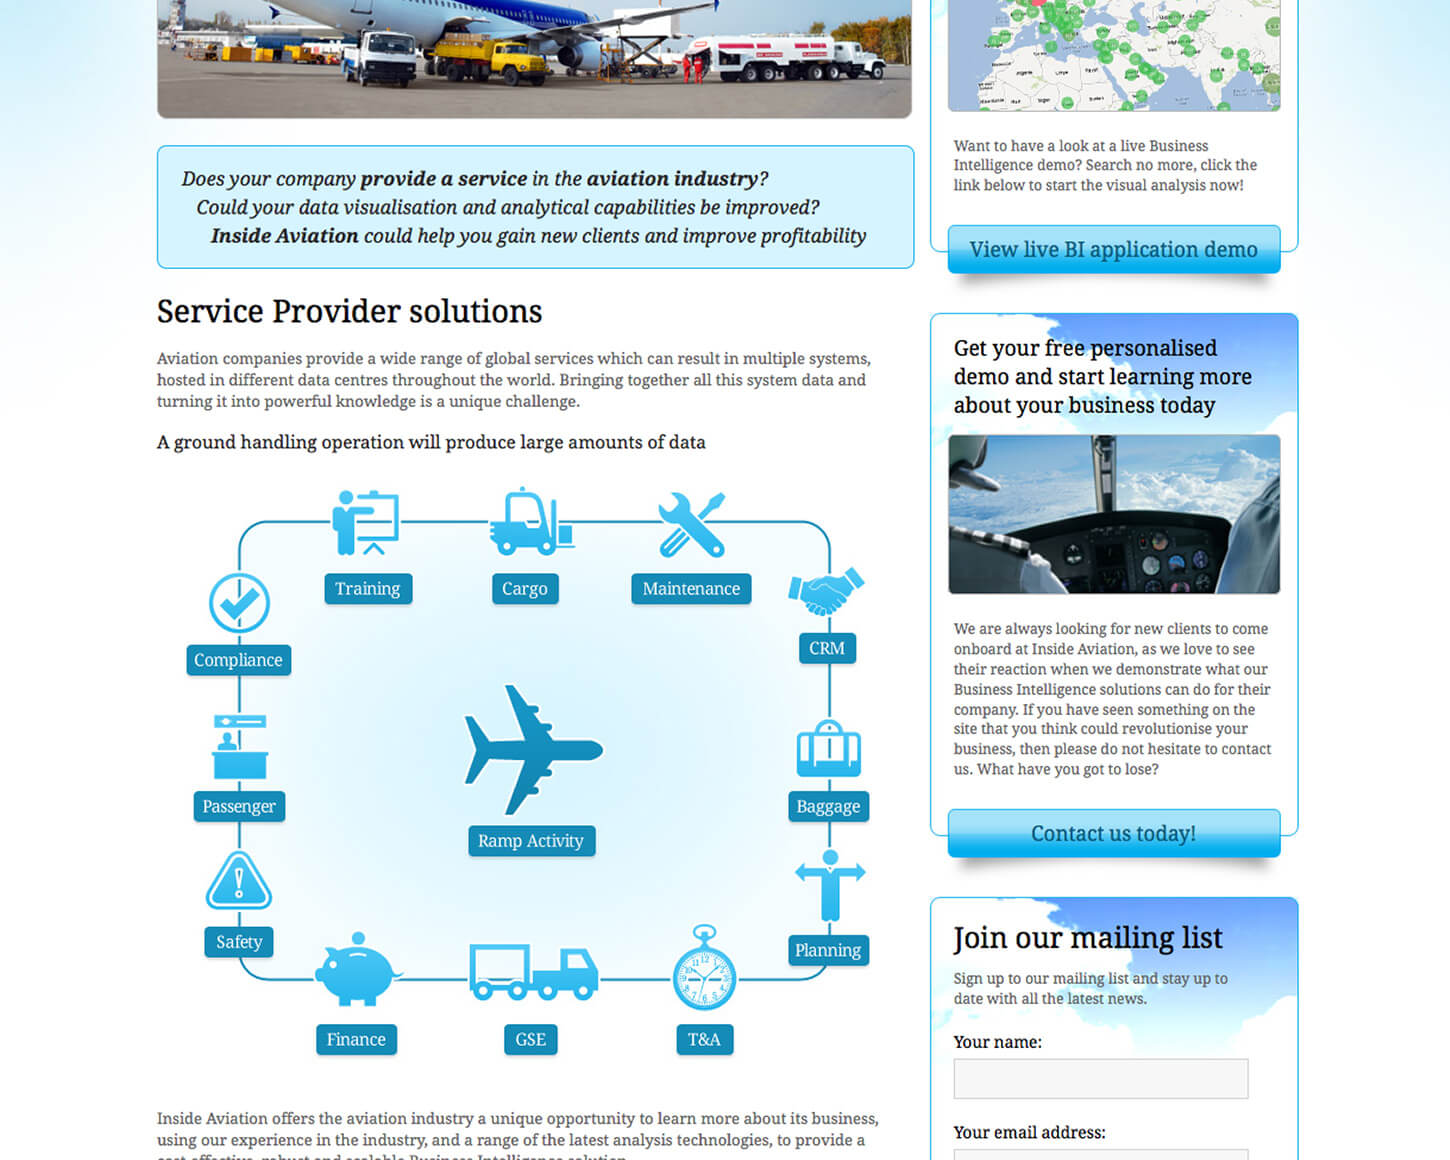 Inside Aviation website